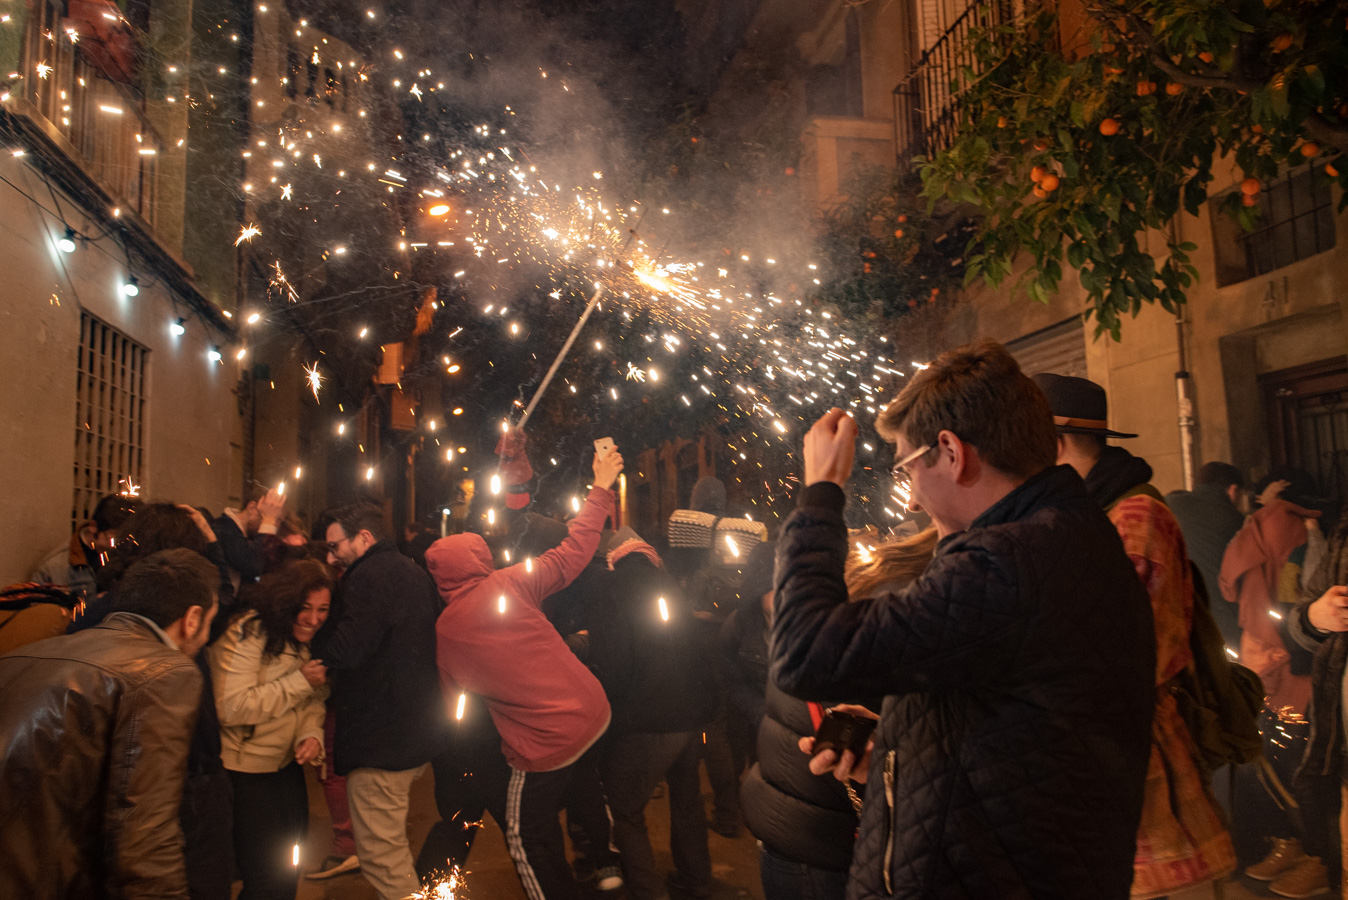 Catalans dancing during the Correfoc